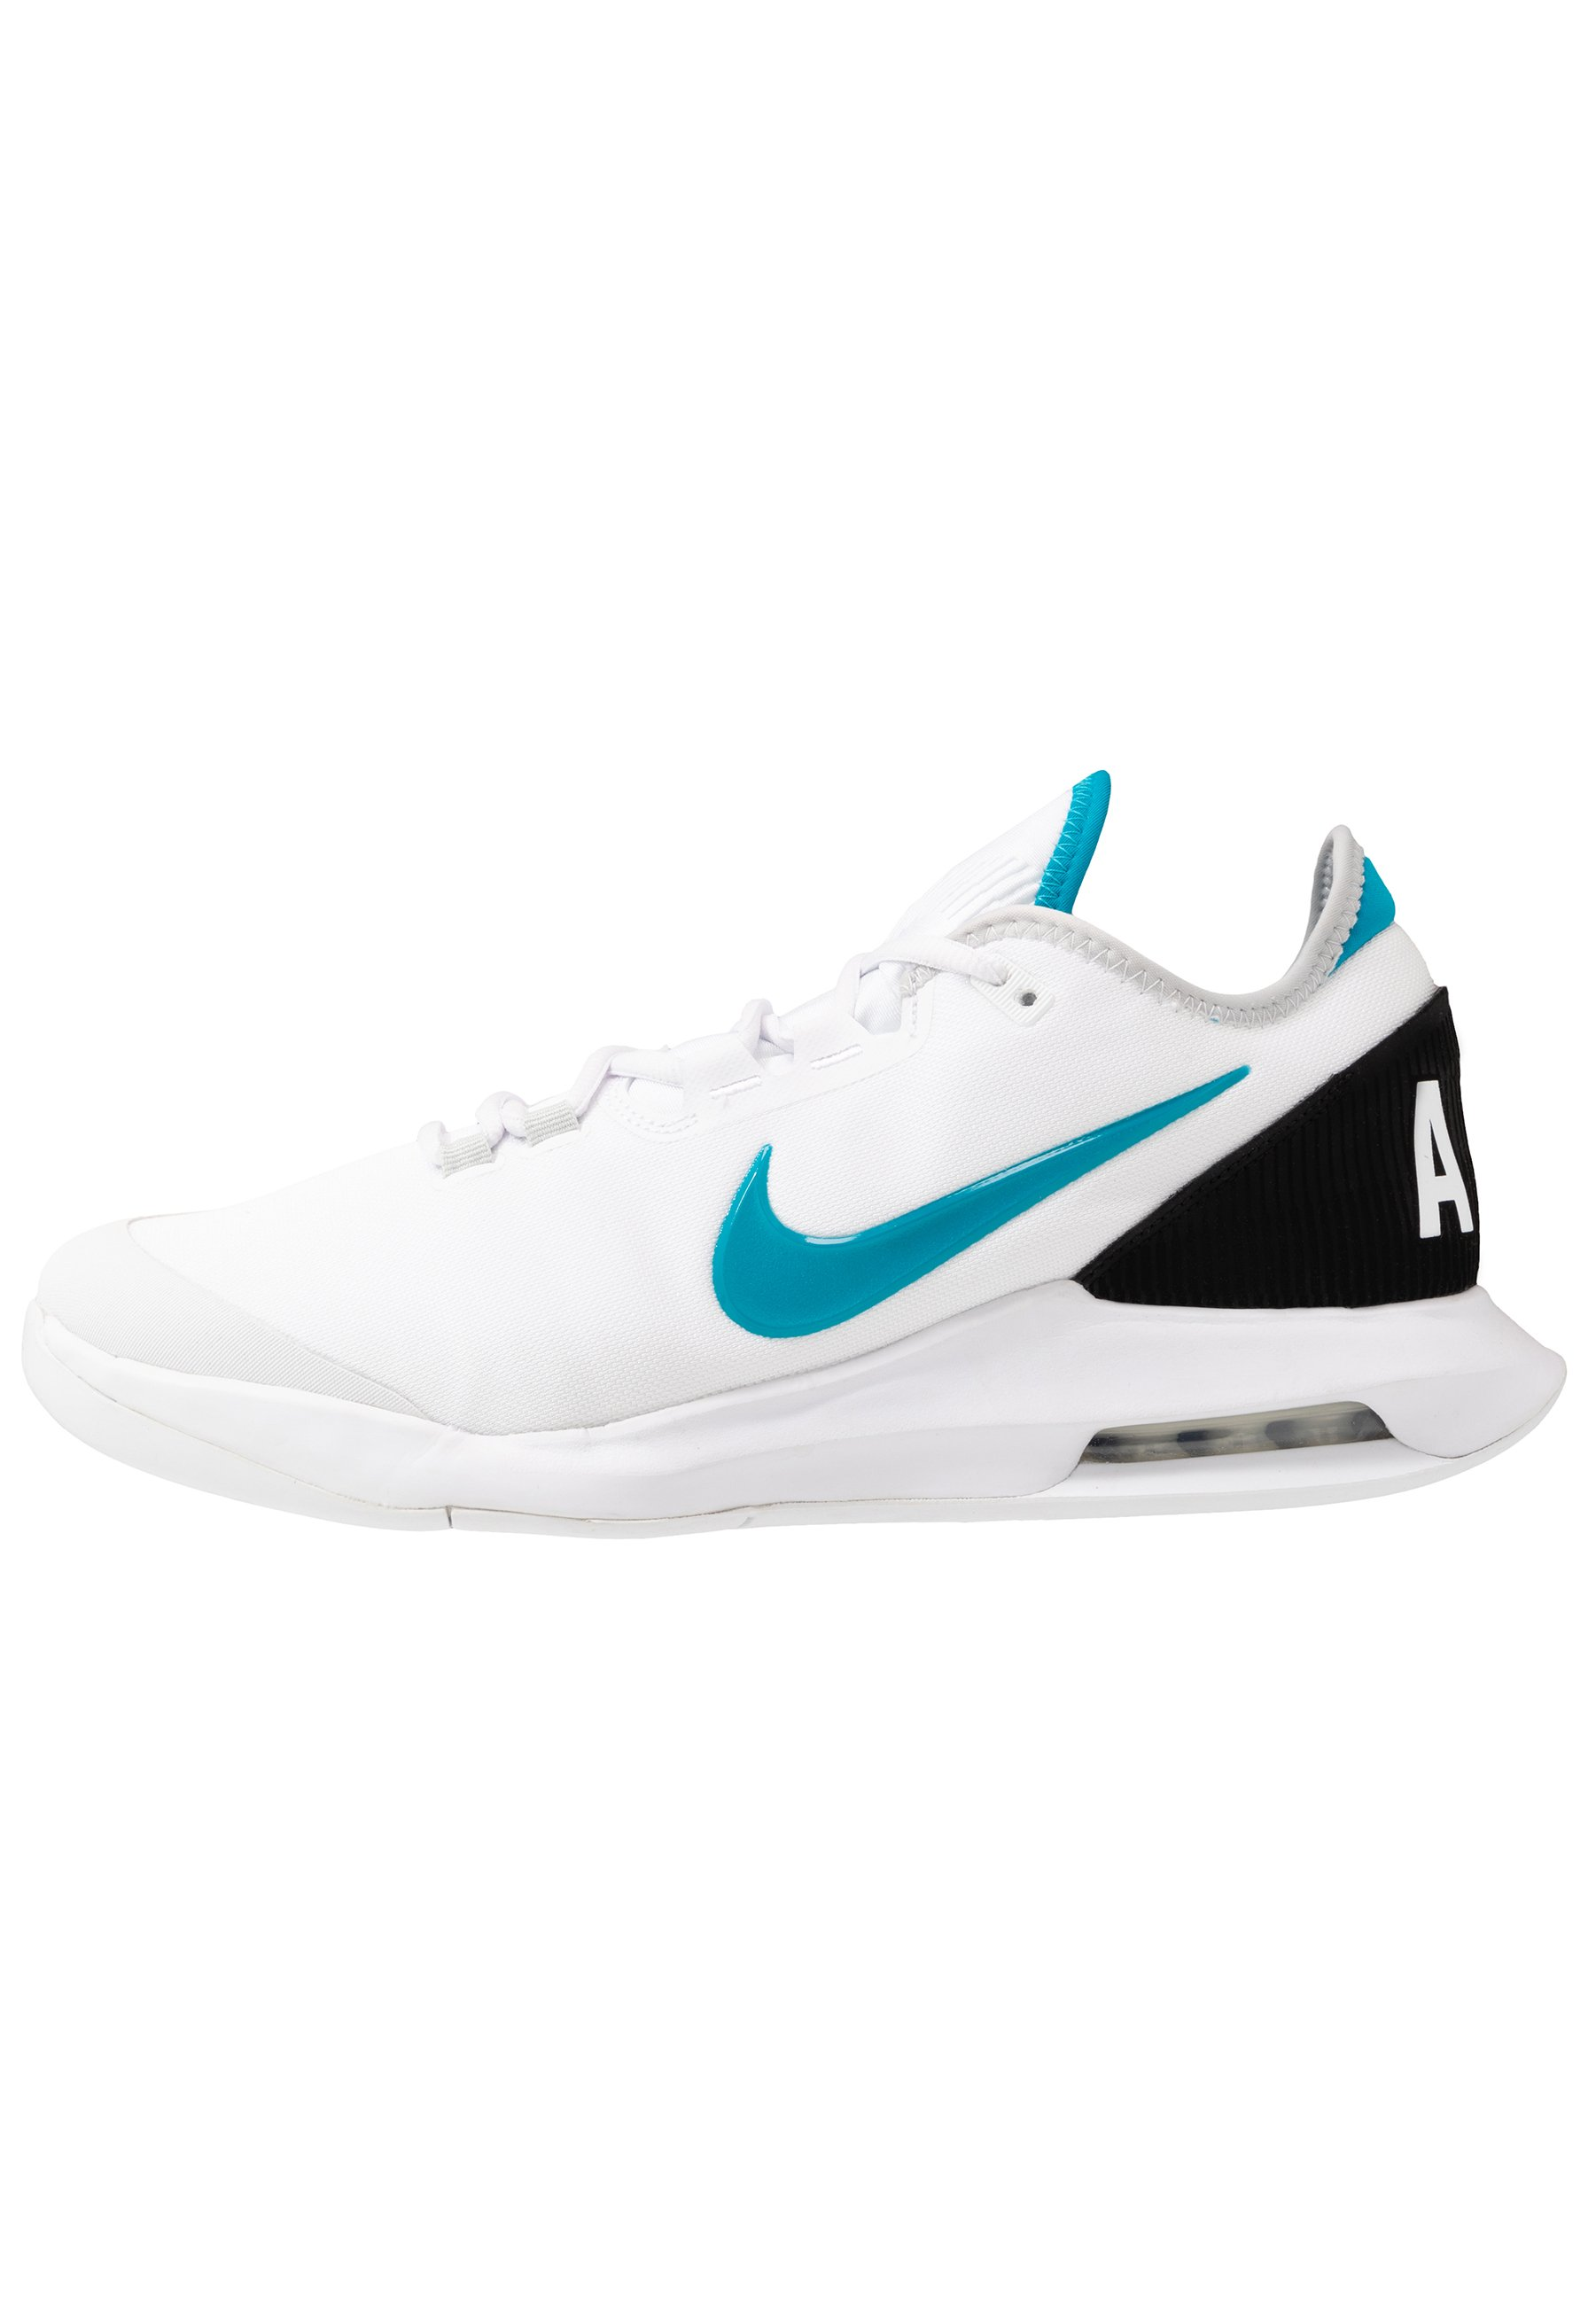 NIKECOURT AIR MAX WILDCARD All court tennisskor whiteneon turquoisegrey foghot lime